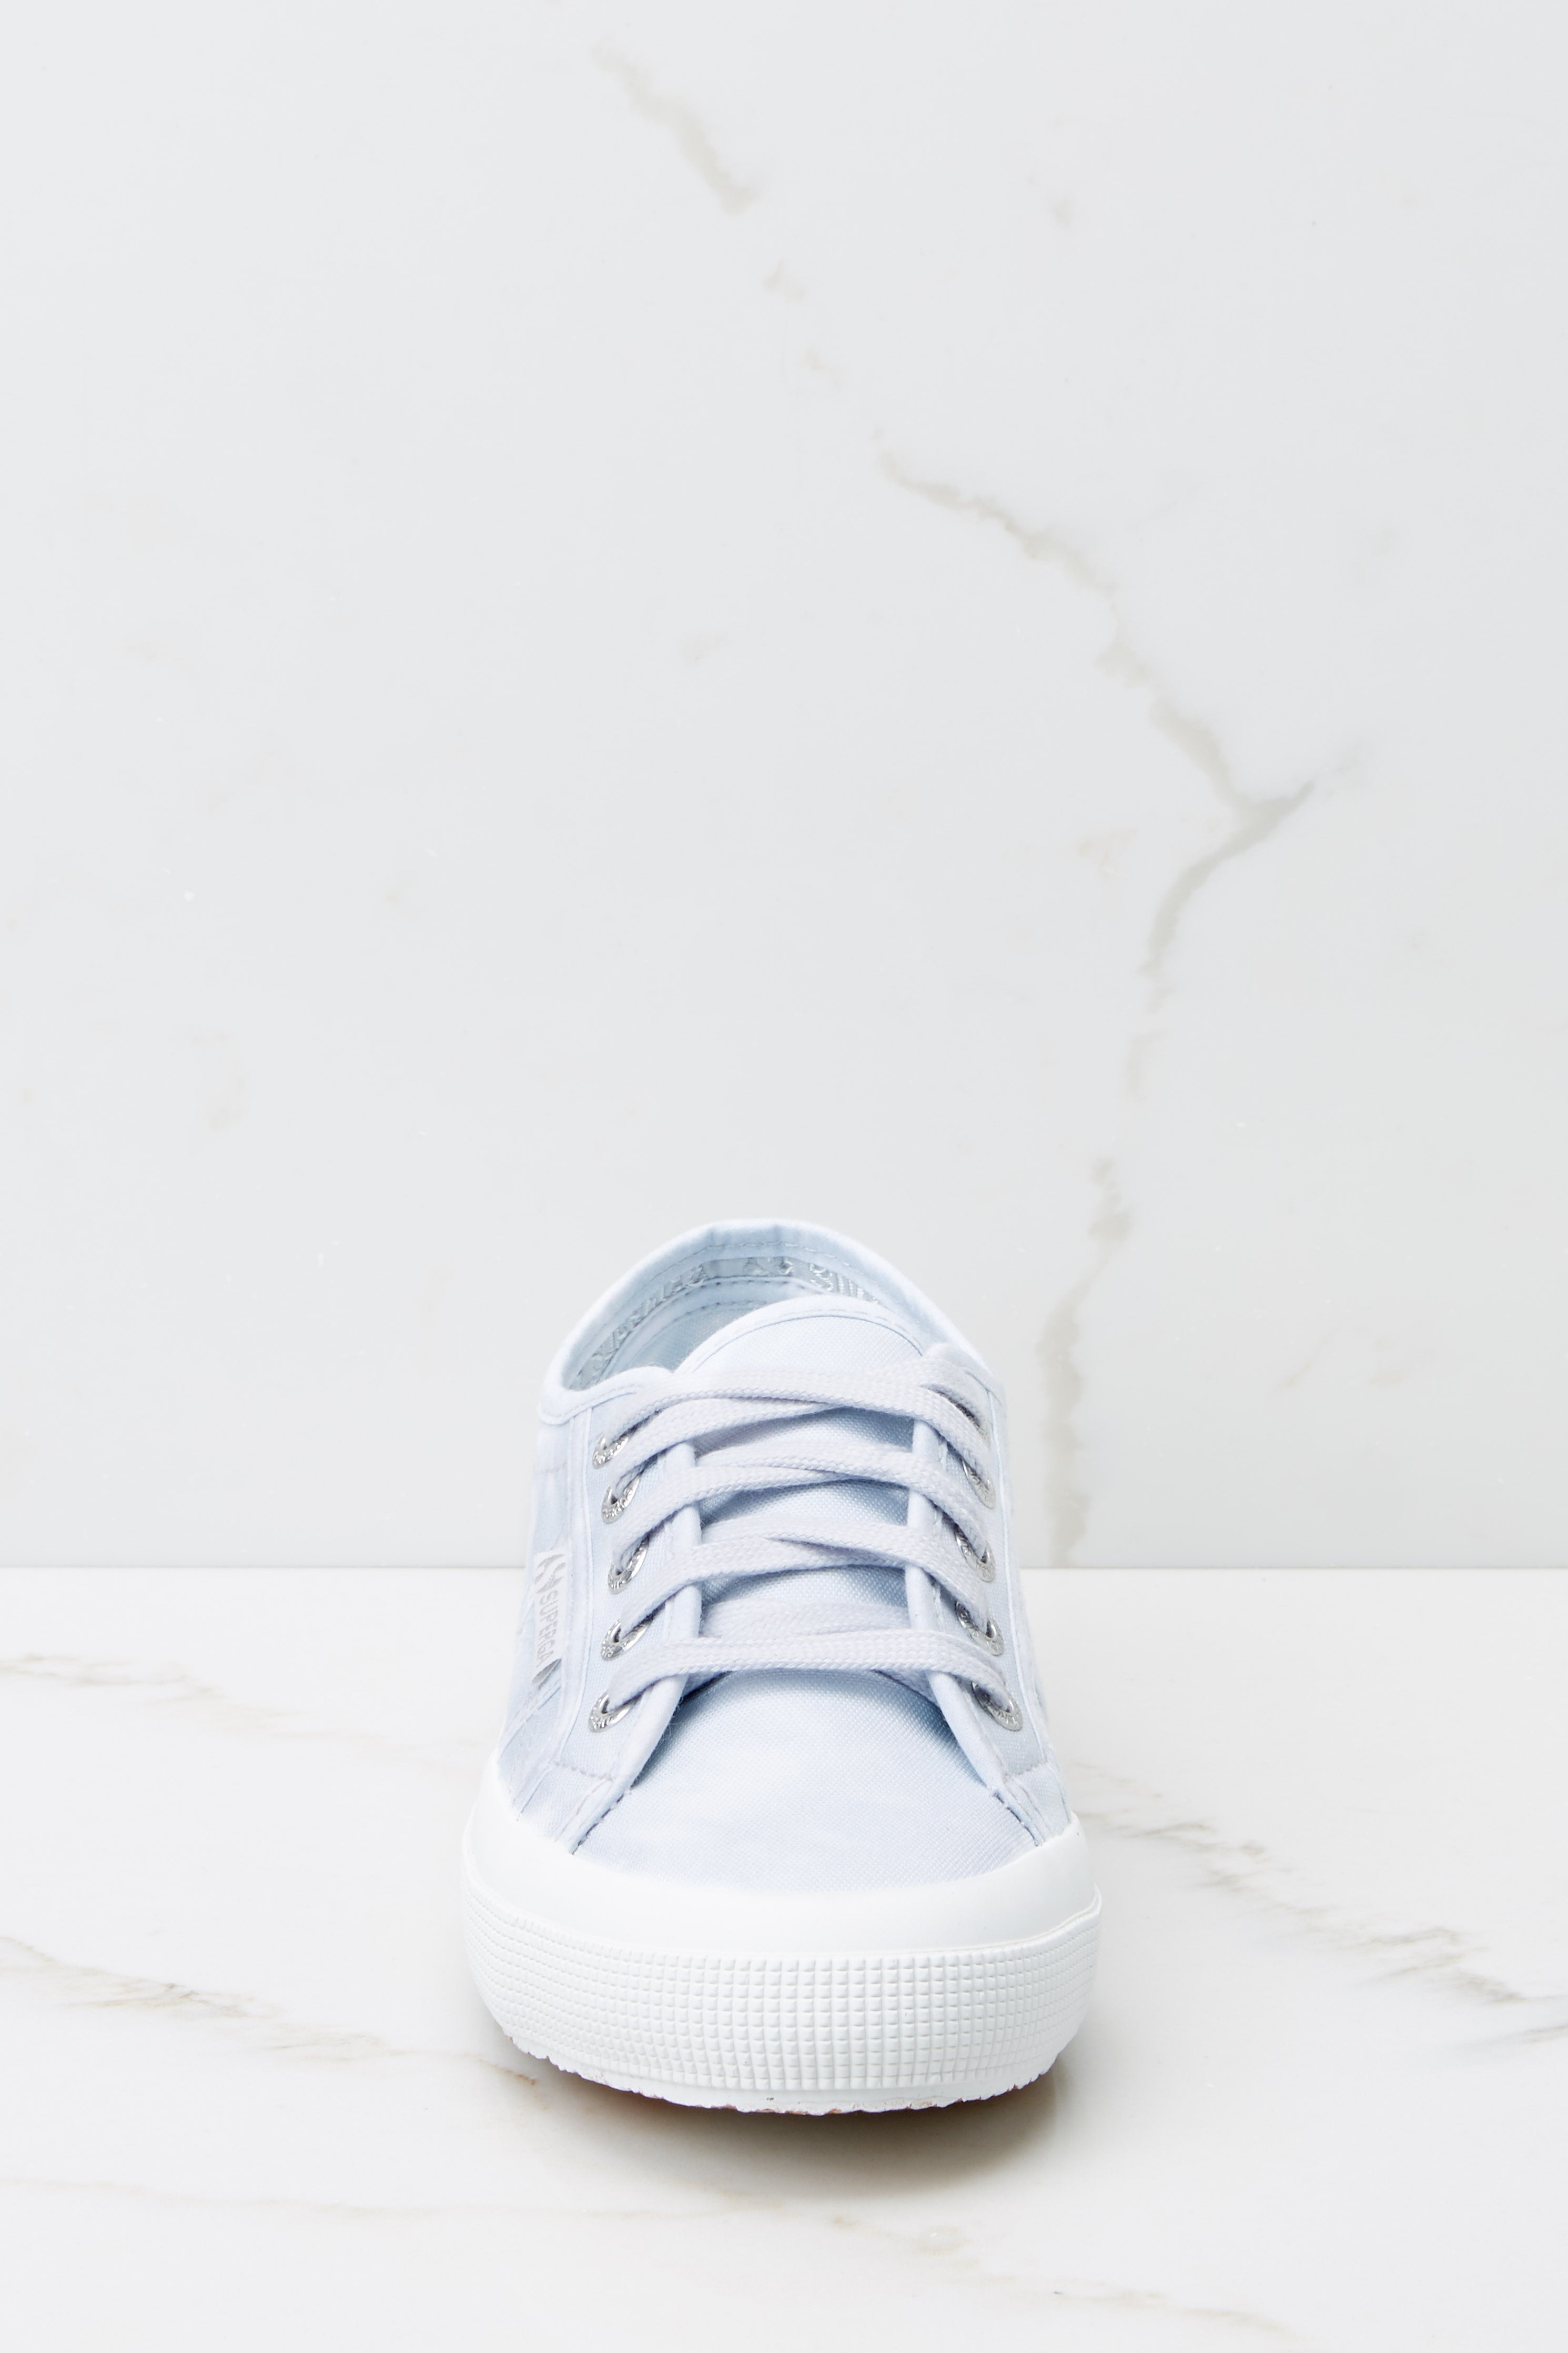 4 2750 Fantasy Cotu Blue Tie Dye Sneakers at reddress.com